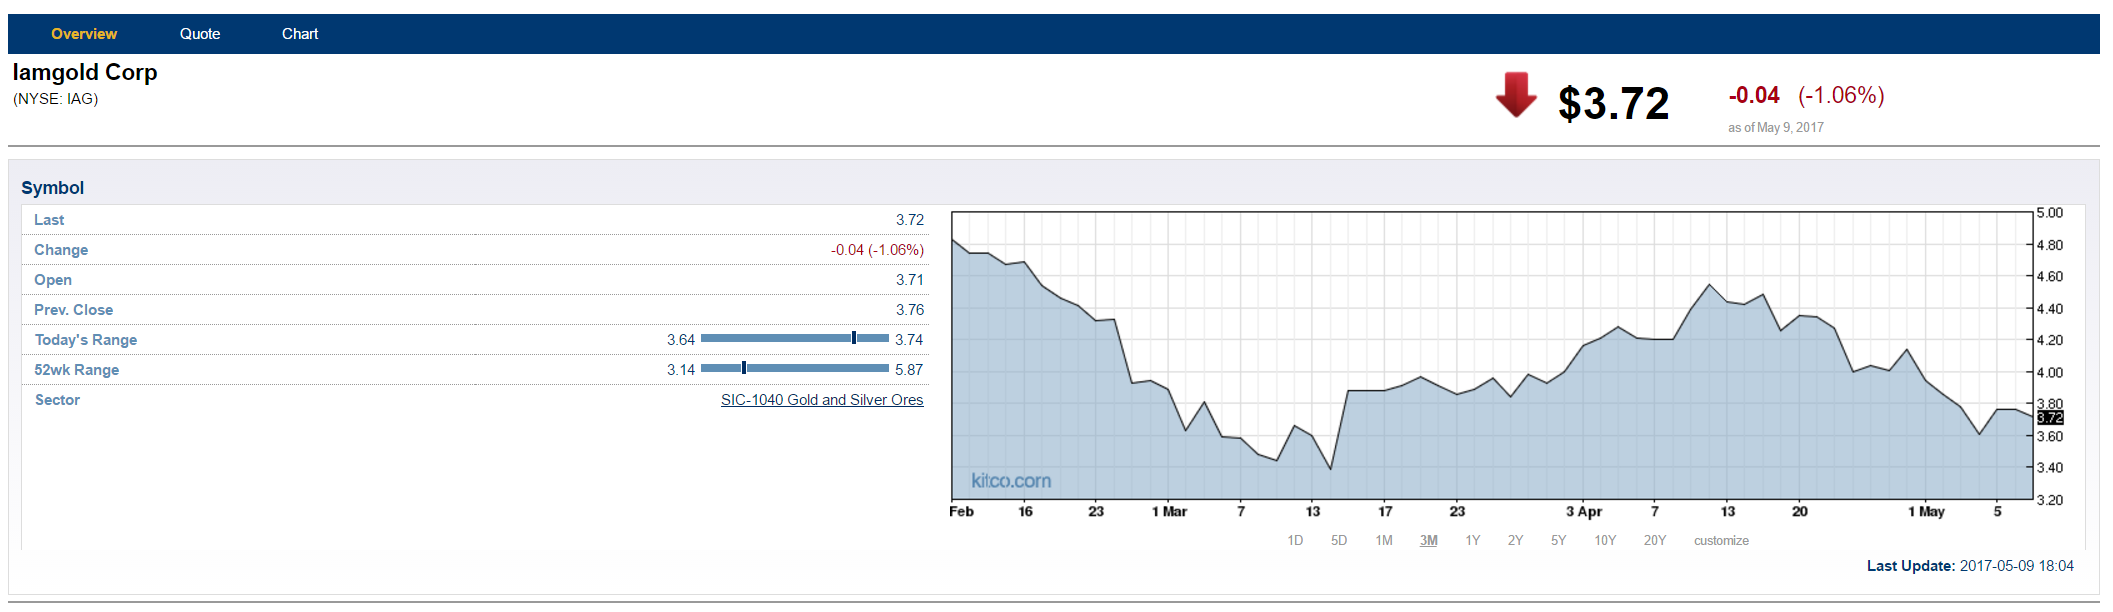 Iamgold Flips To Adjusted Q1 Profit On Higher Output, Prices